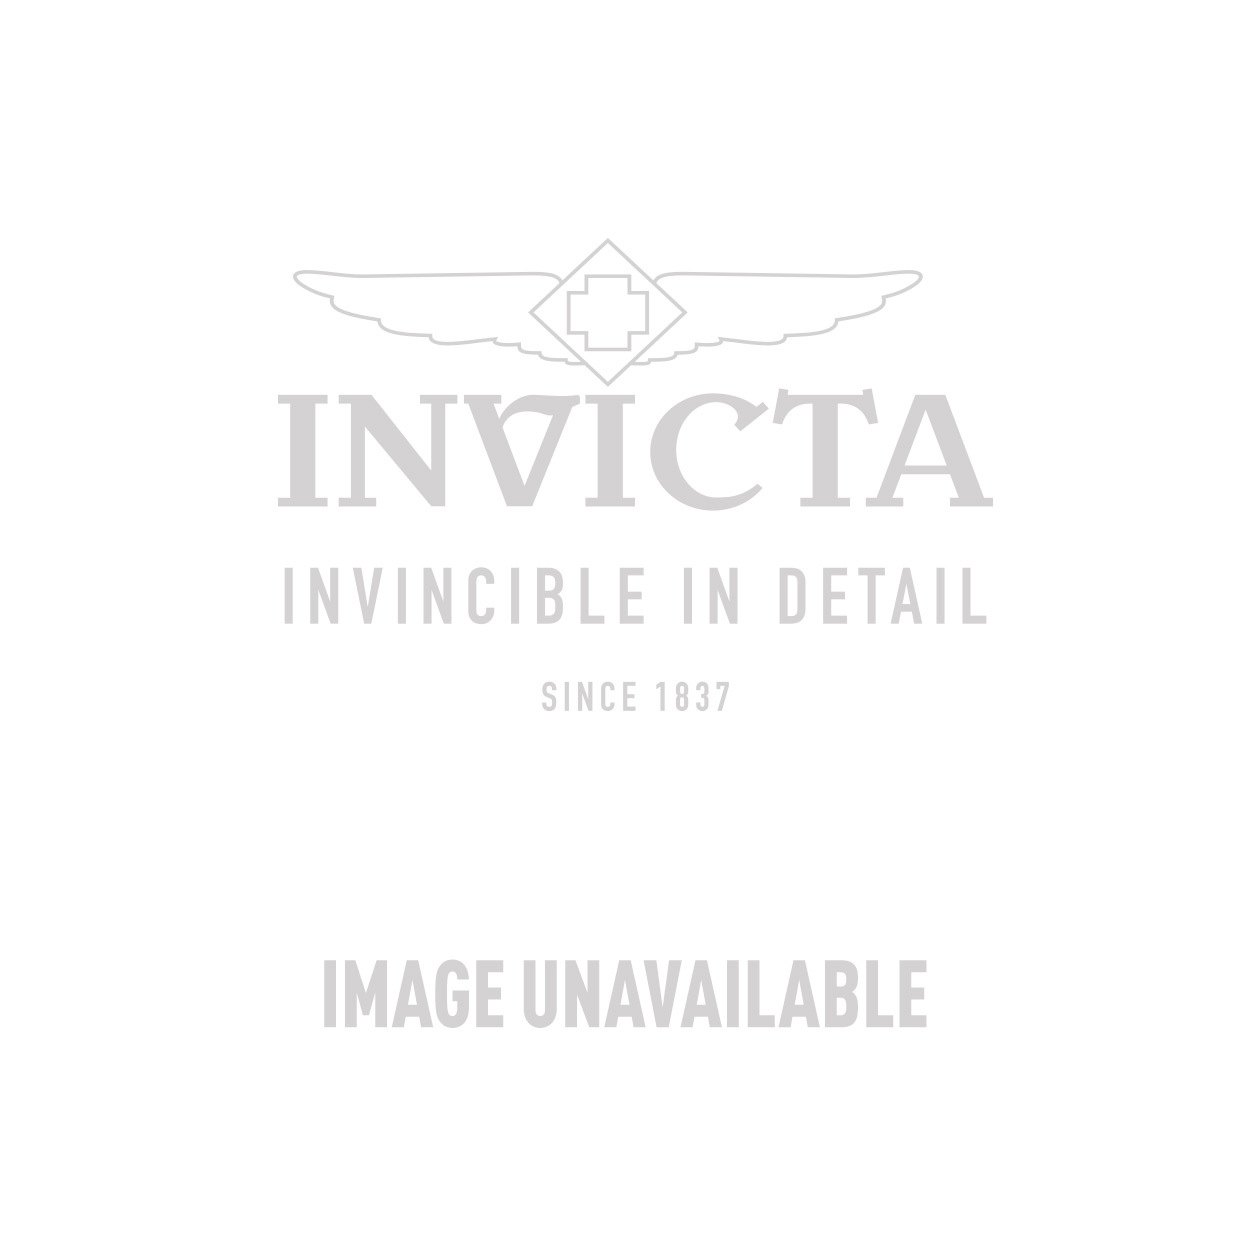 Invicta Subaqua Swiss Made Quartz Watch - Stainless Steel case with Steel, White tone Stainless Steel, Silicone band - Model 17231